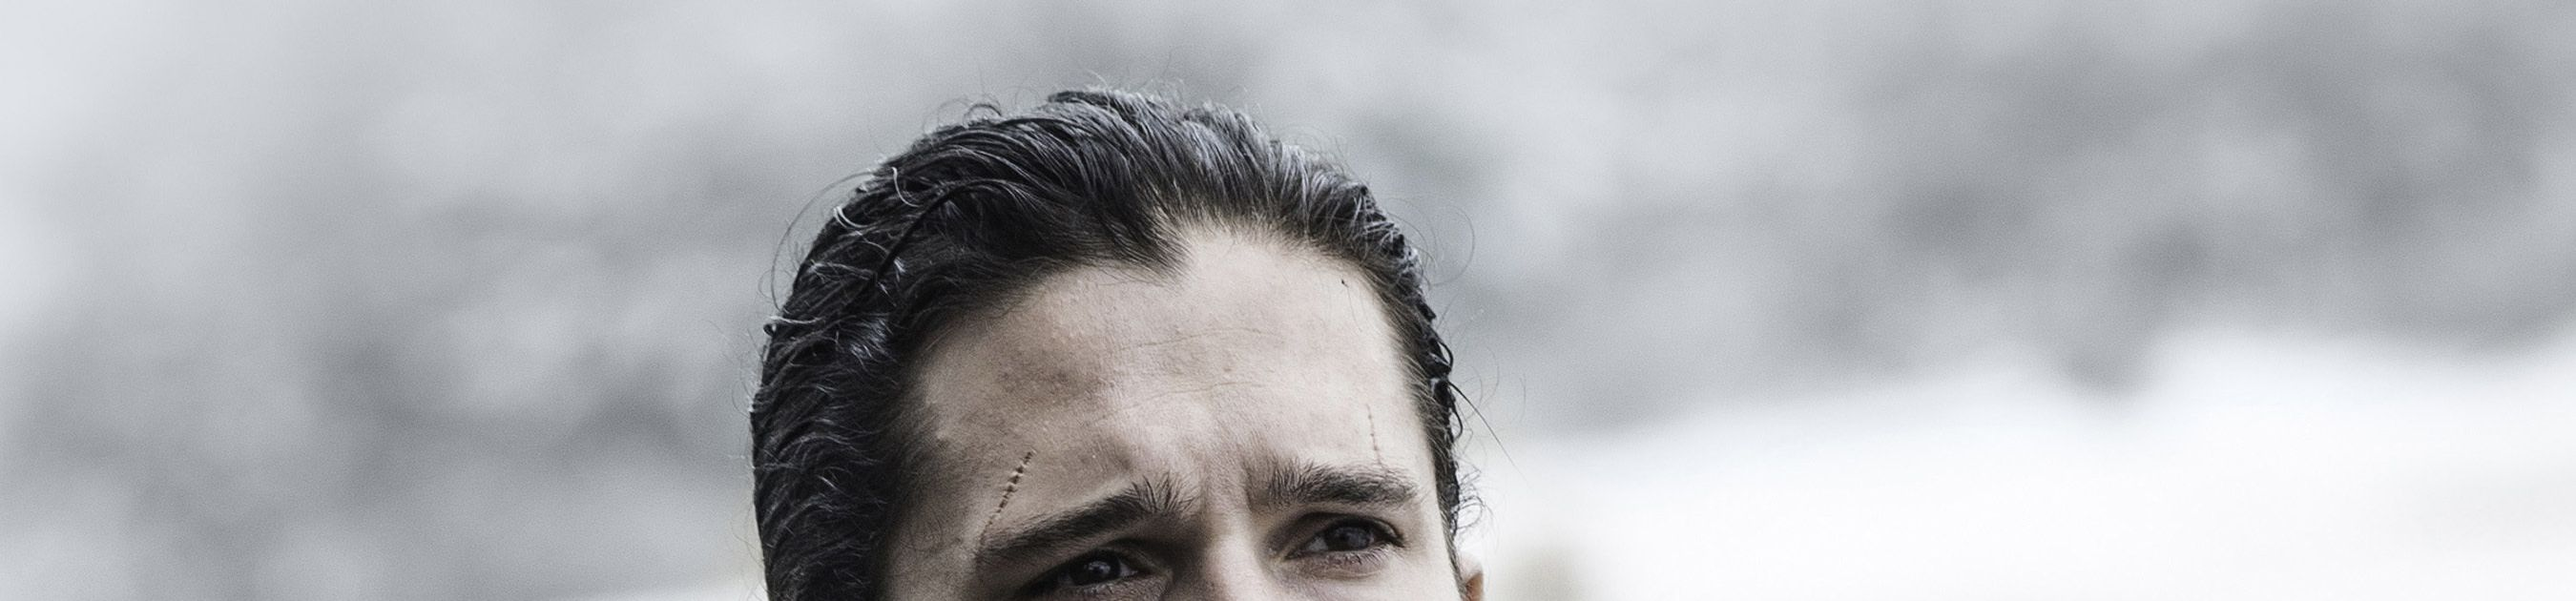 Who are Jon Snow's parents? 'Game of Thrones' infographic provides definitive answer